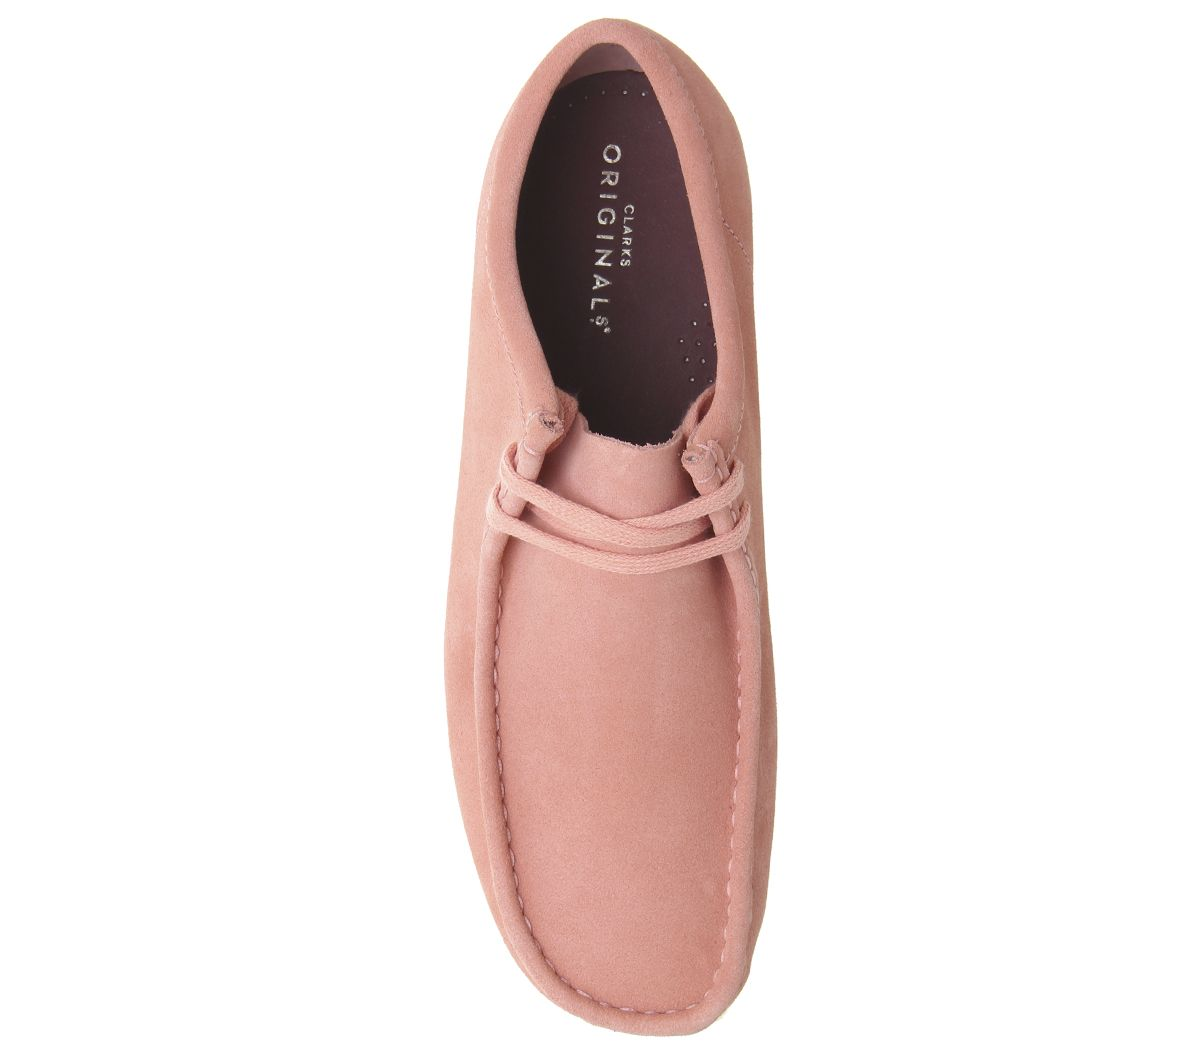 ecb48c30 Details about Mens Clarks Originals Wallabee Shoes Coral Suede Casual Shoes